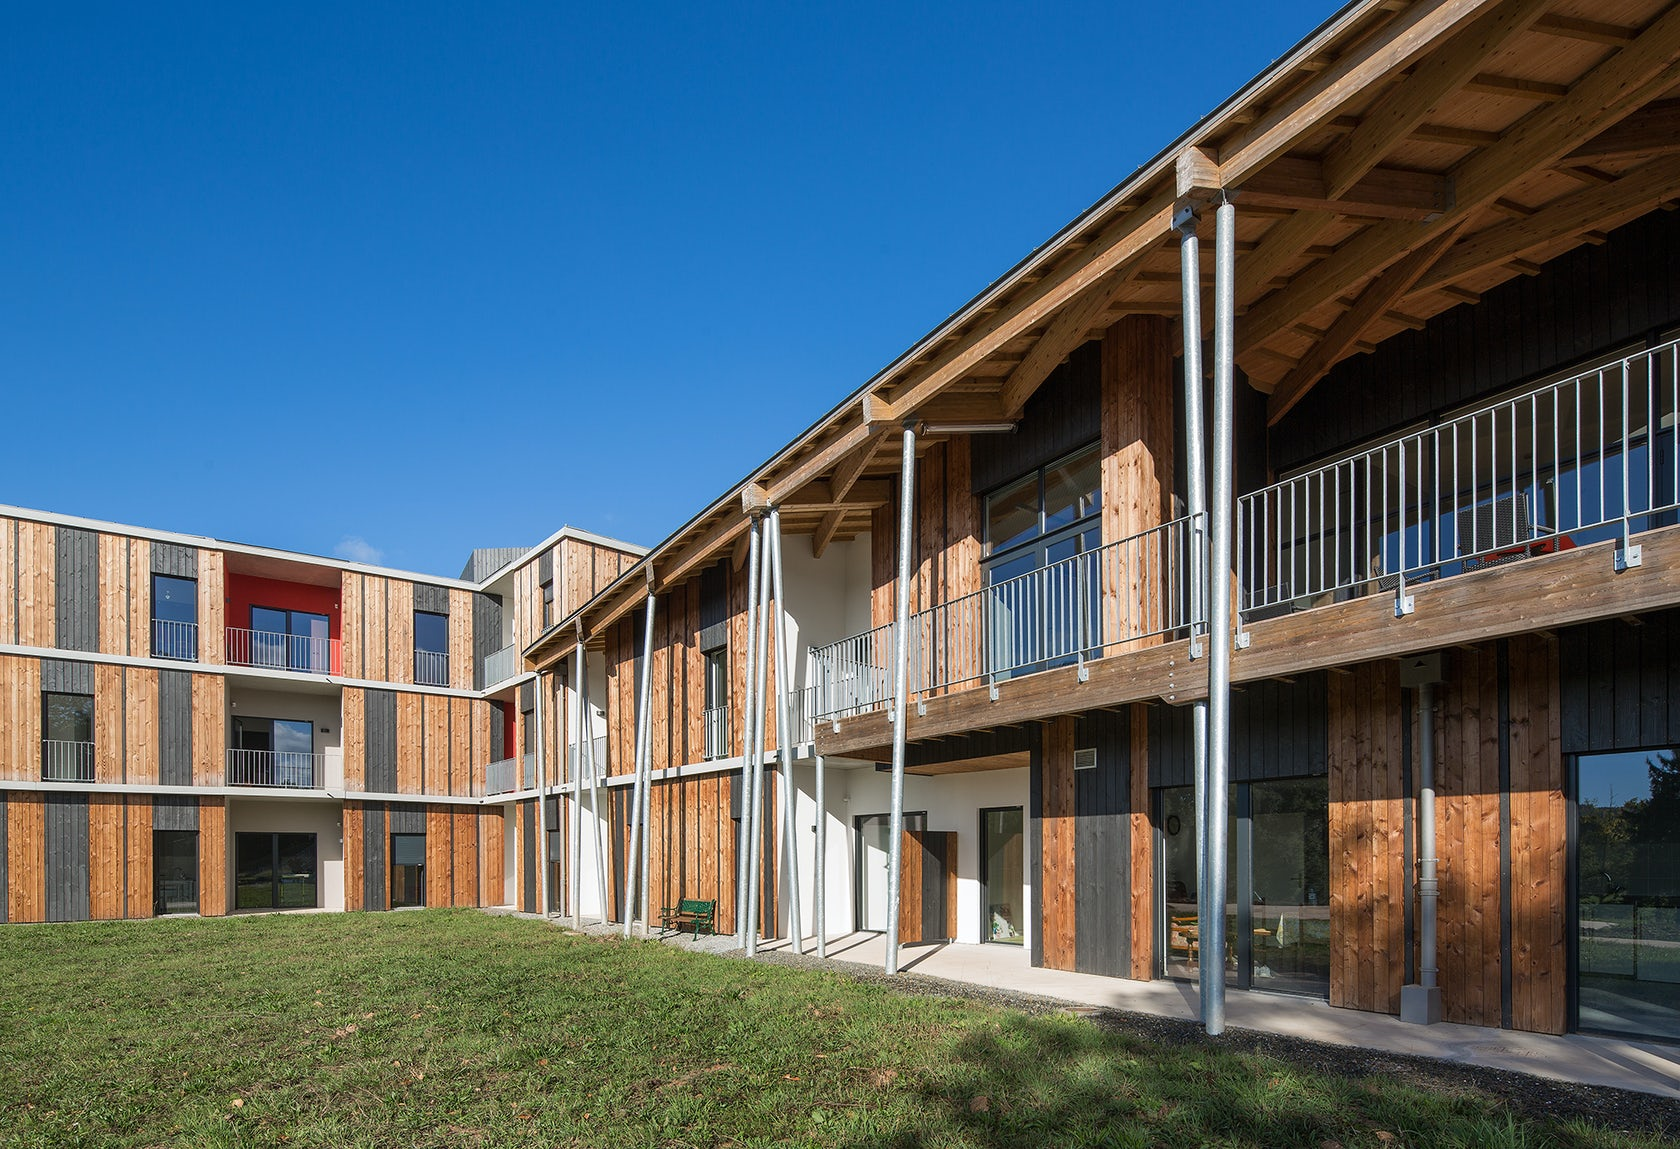 Accommodation facility for the elderly architizer for Architecture nomade